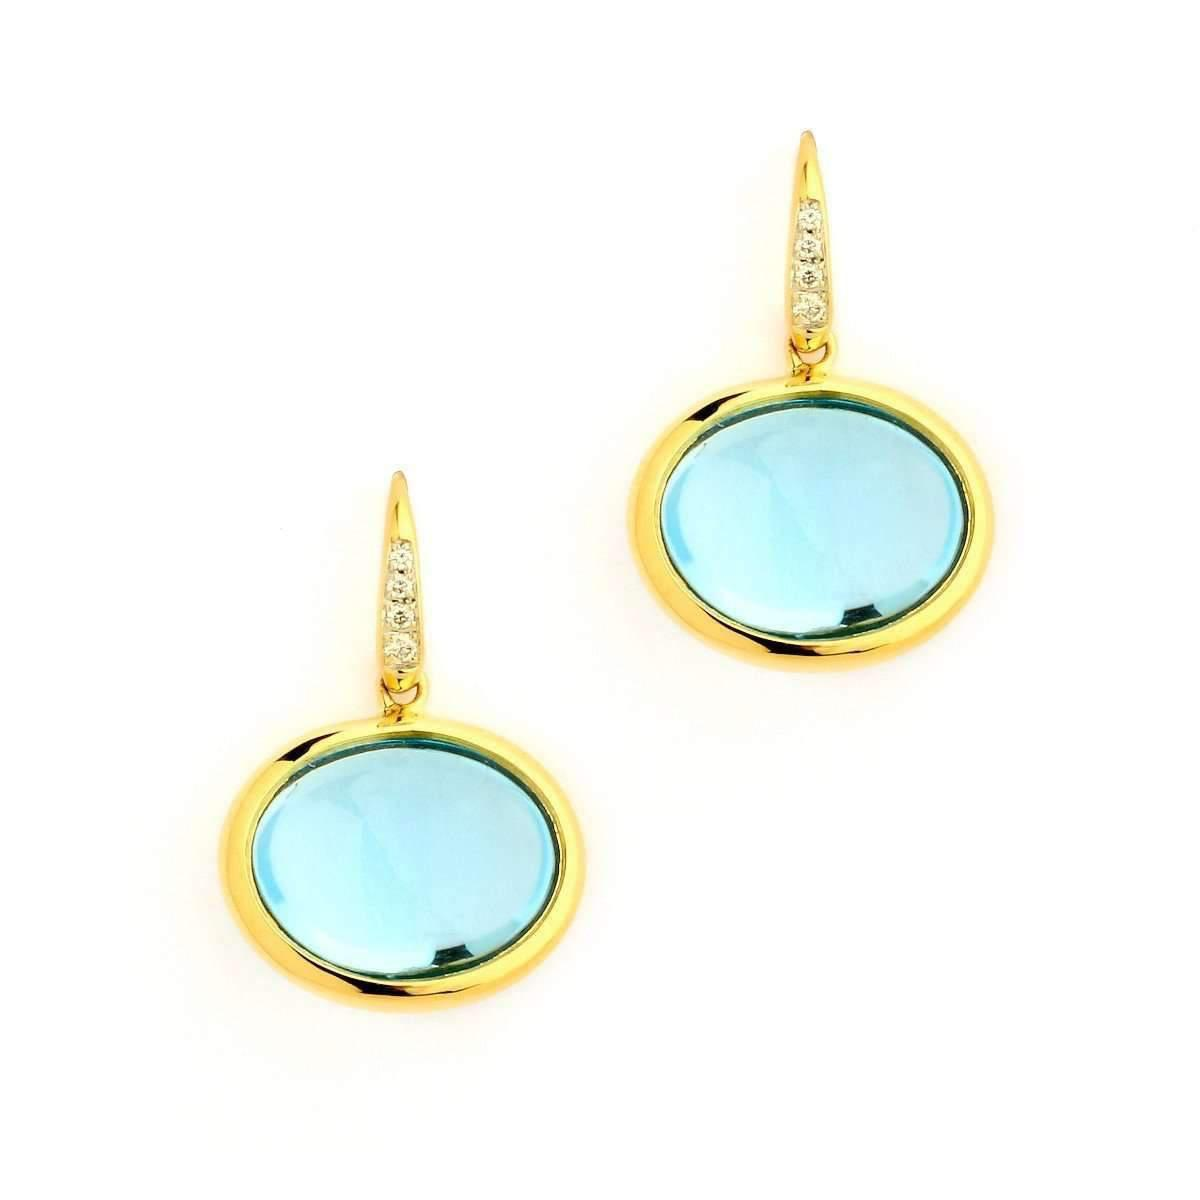 Syna 18kt Blue Topaz Earrings BudFuhneY